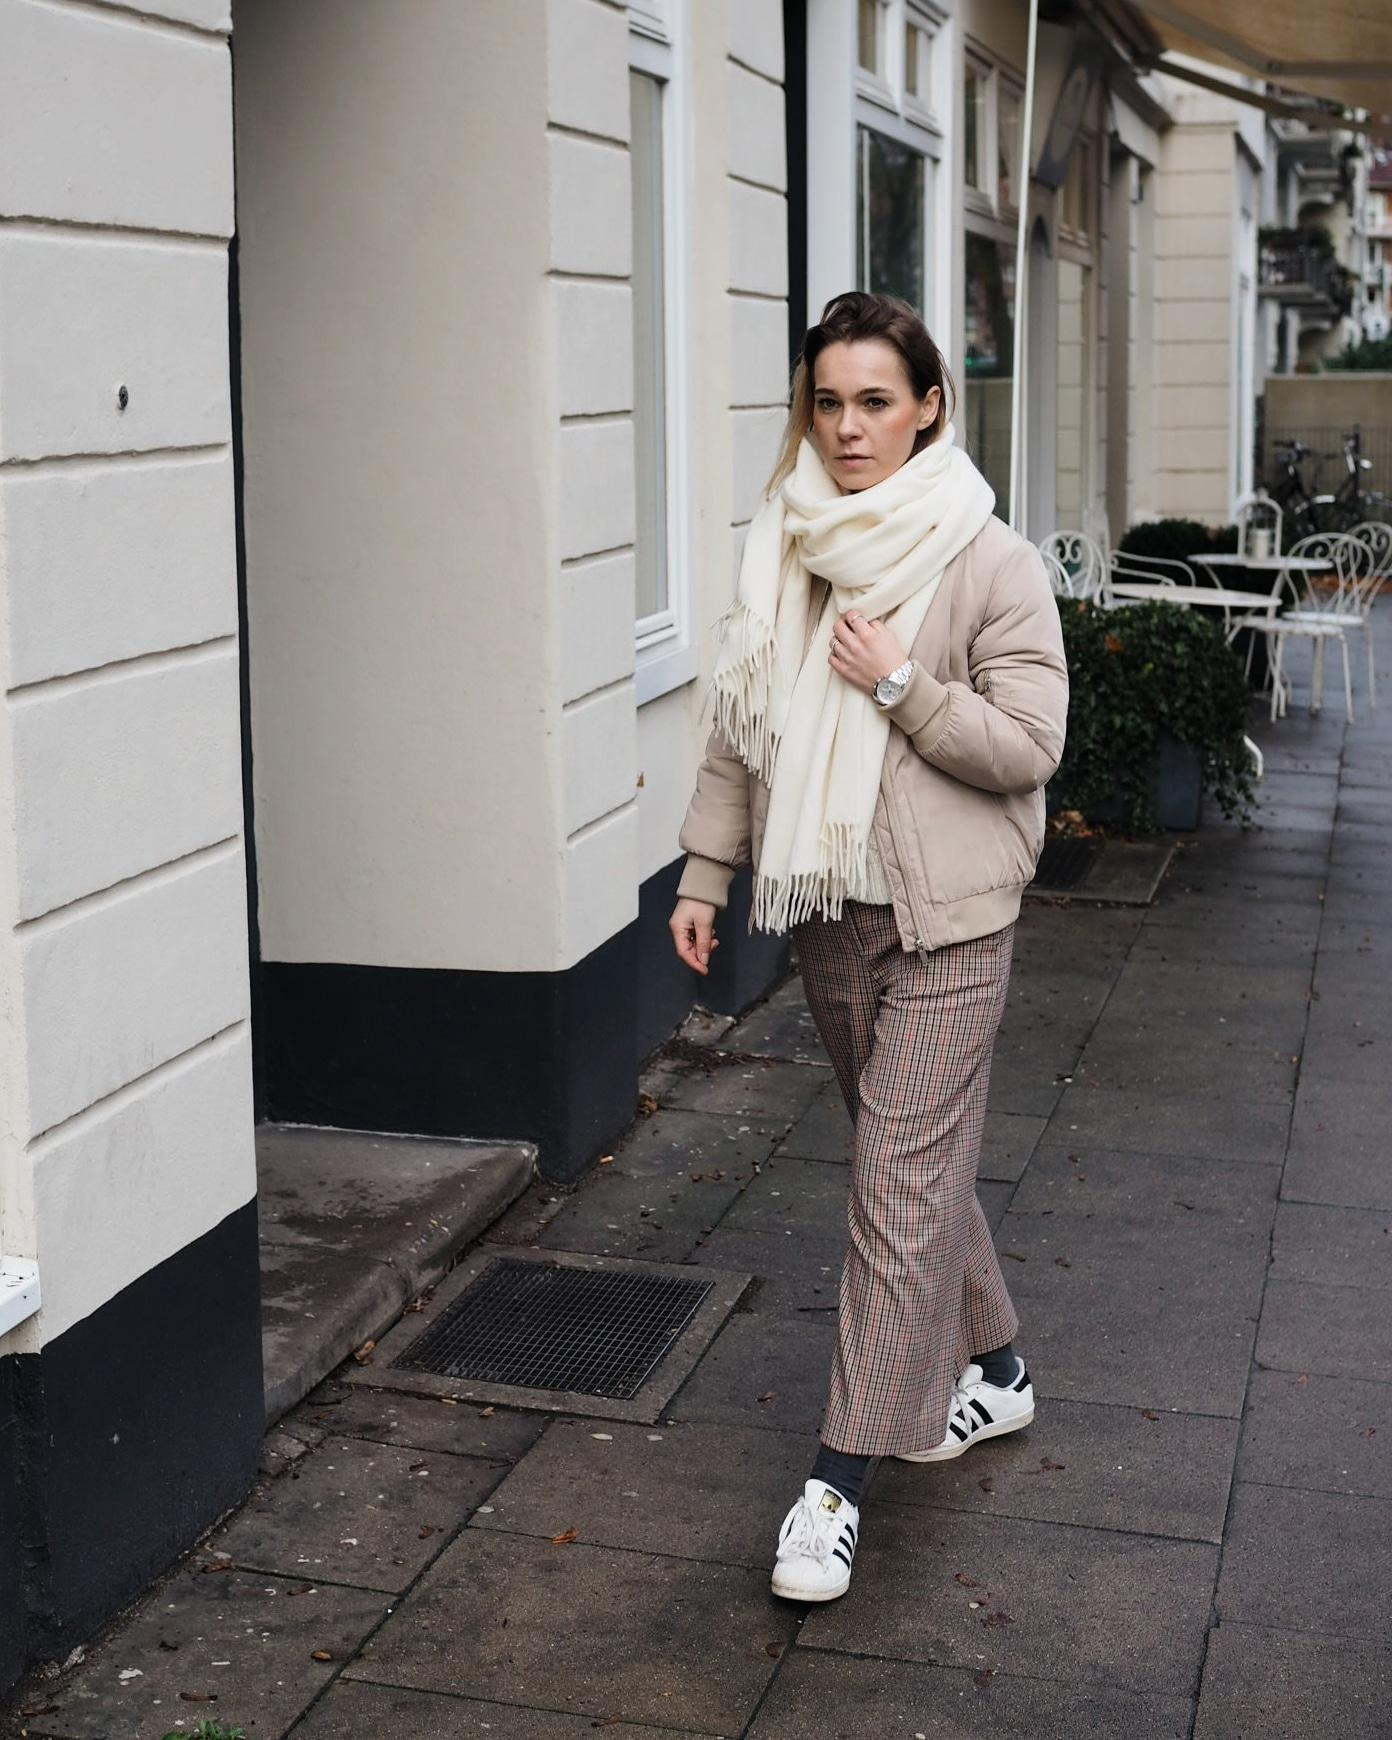 Beige Töne 🐑 #kariert #karo #fashion #winteroutfit #fashioncrush